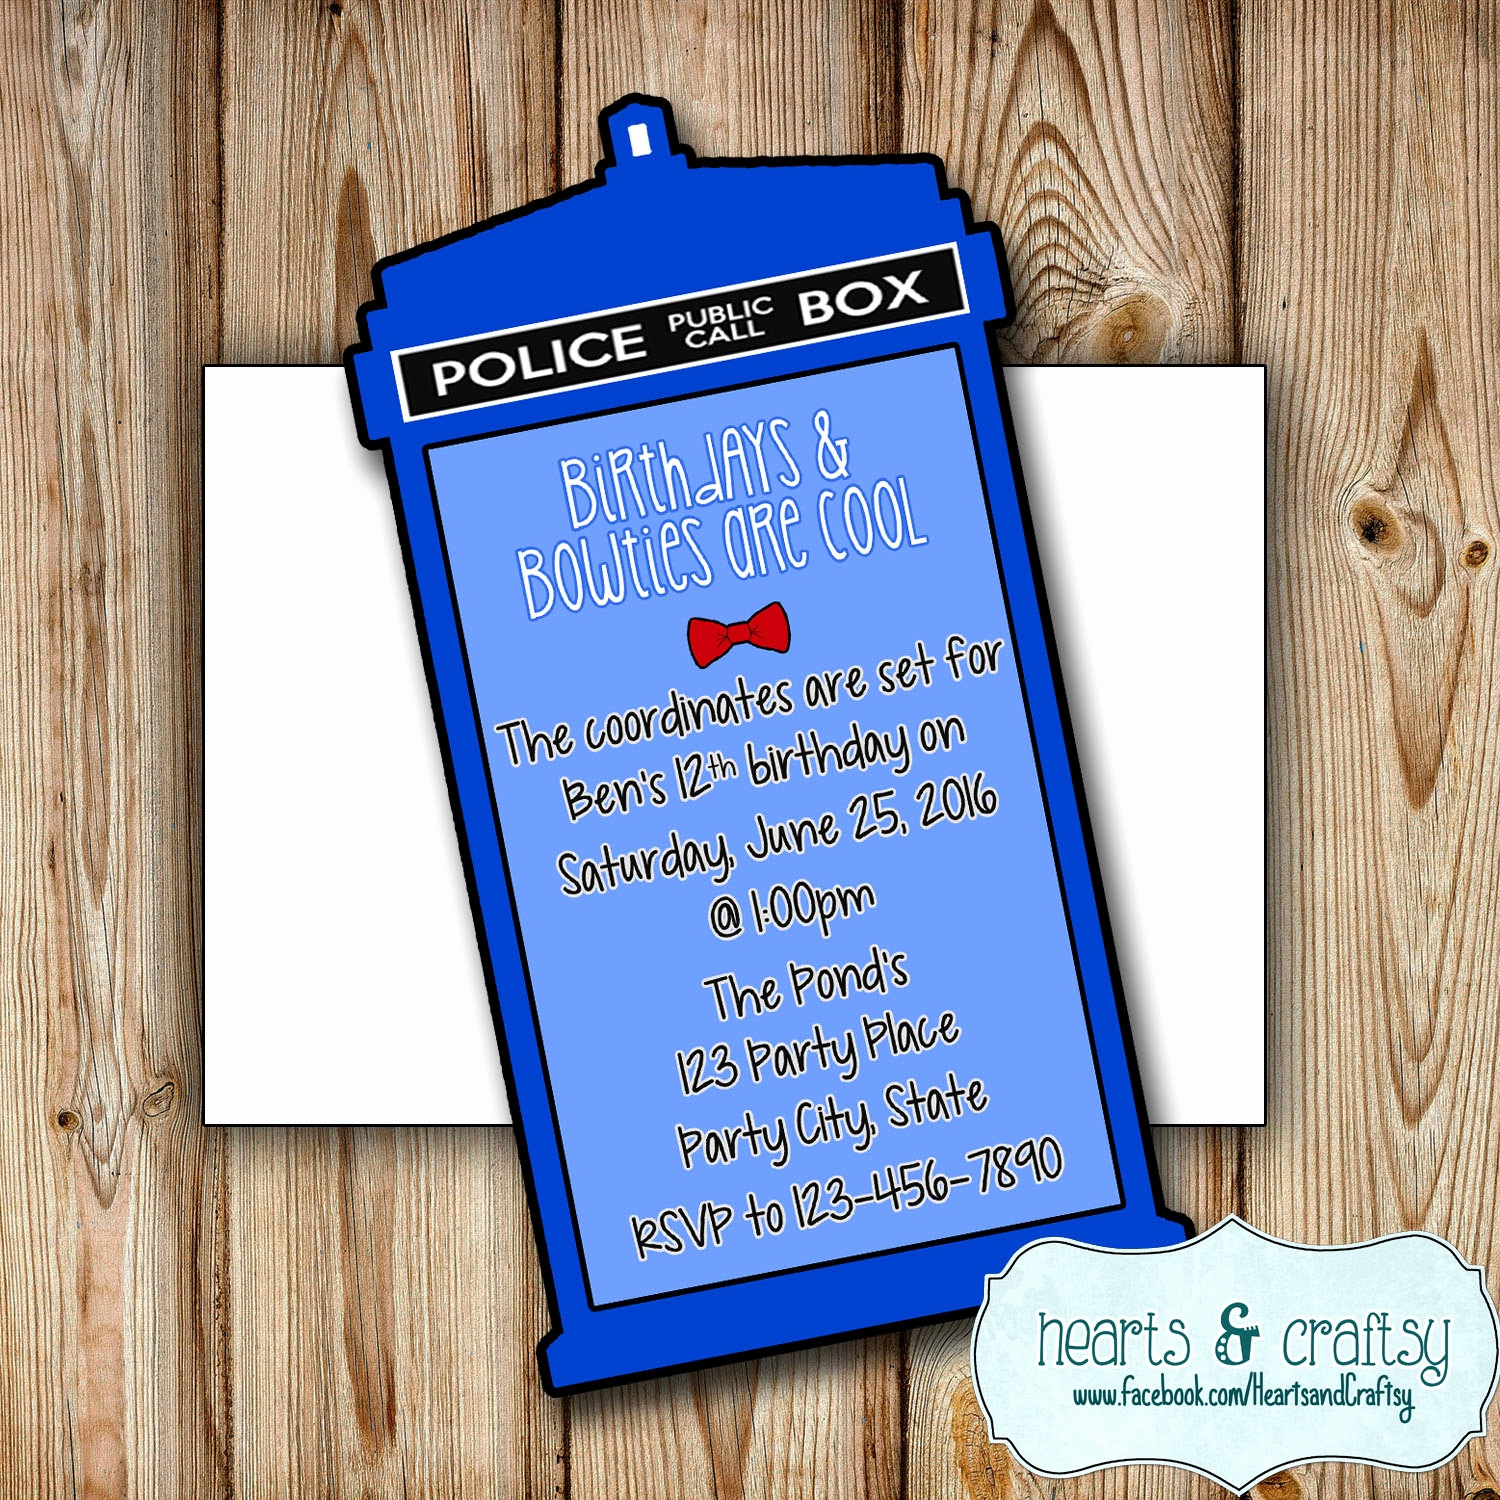 Invitation. Doctor Who Party Invitations Printable Free - Doctor Who Party Invitations Printable Free